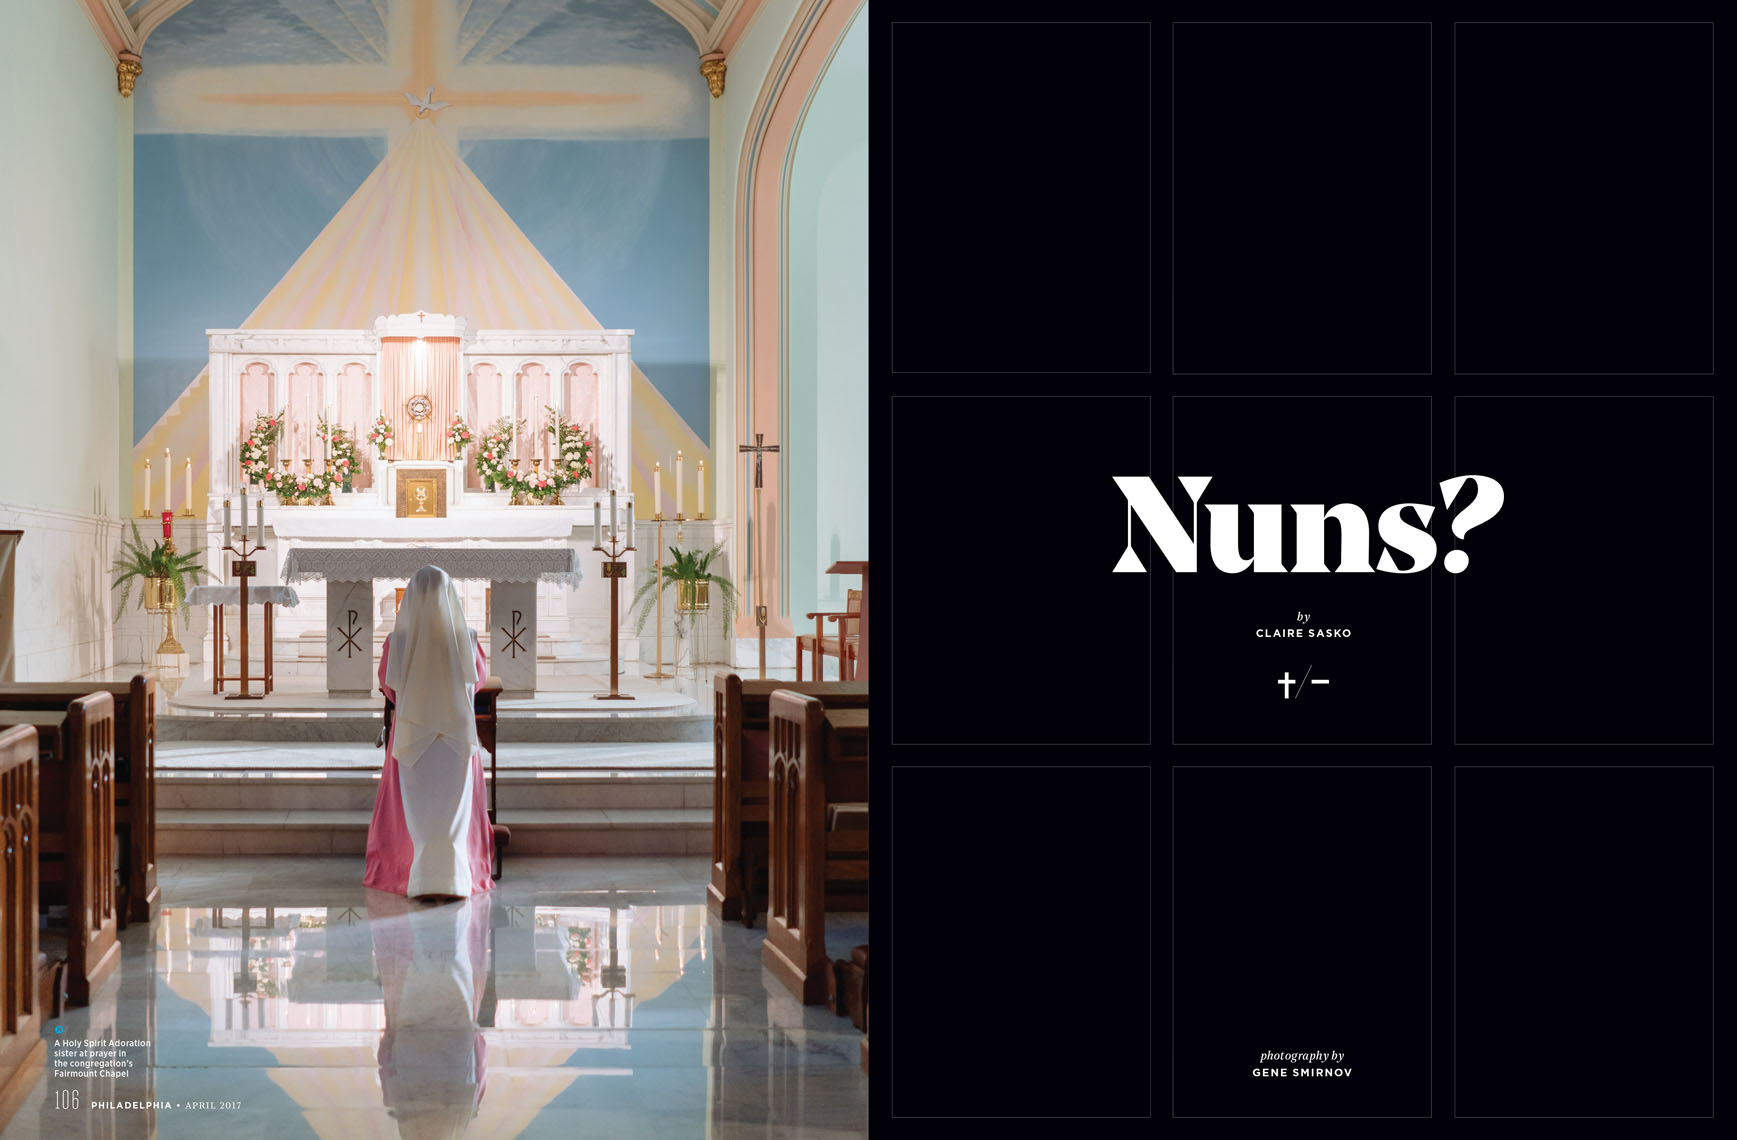 Philadelphia Magazine feature story about the Nuns of the city